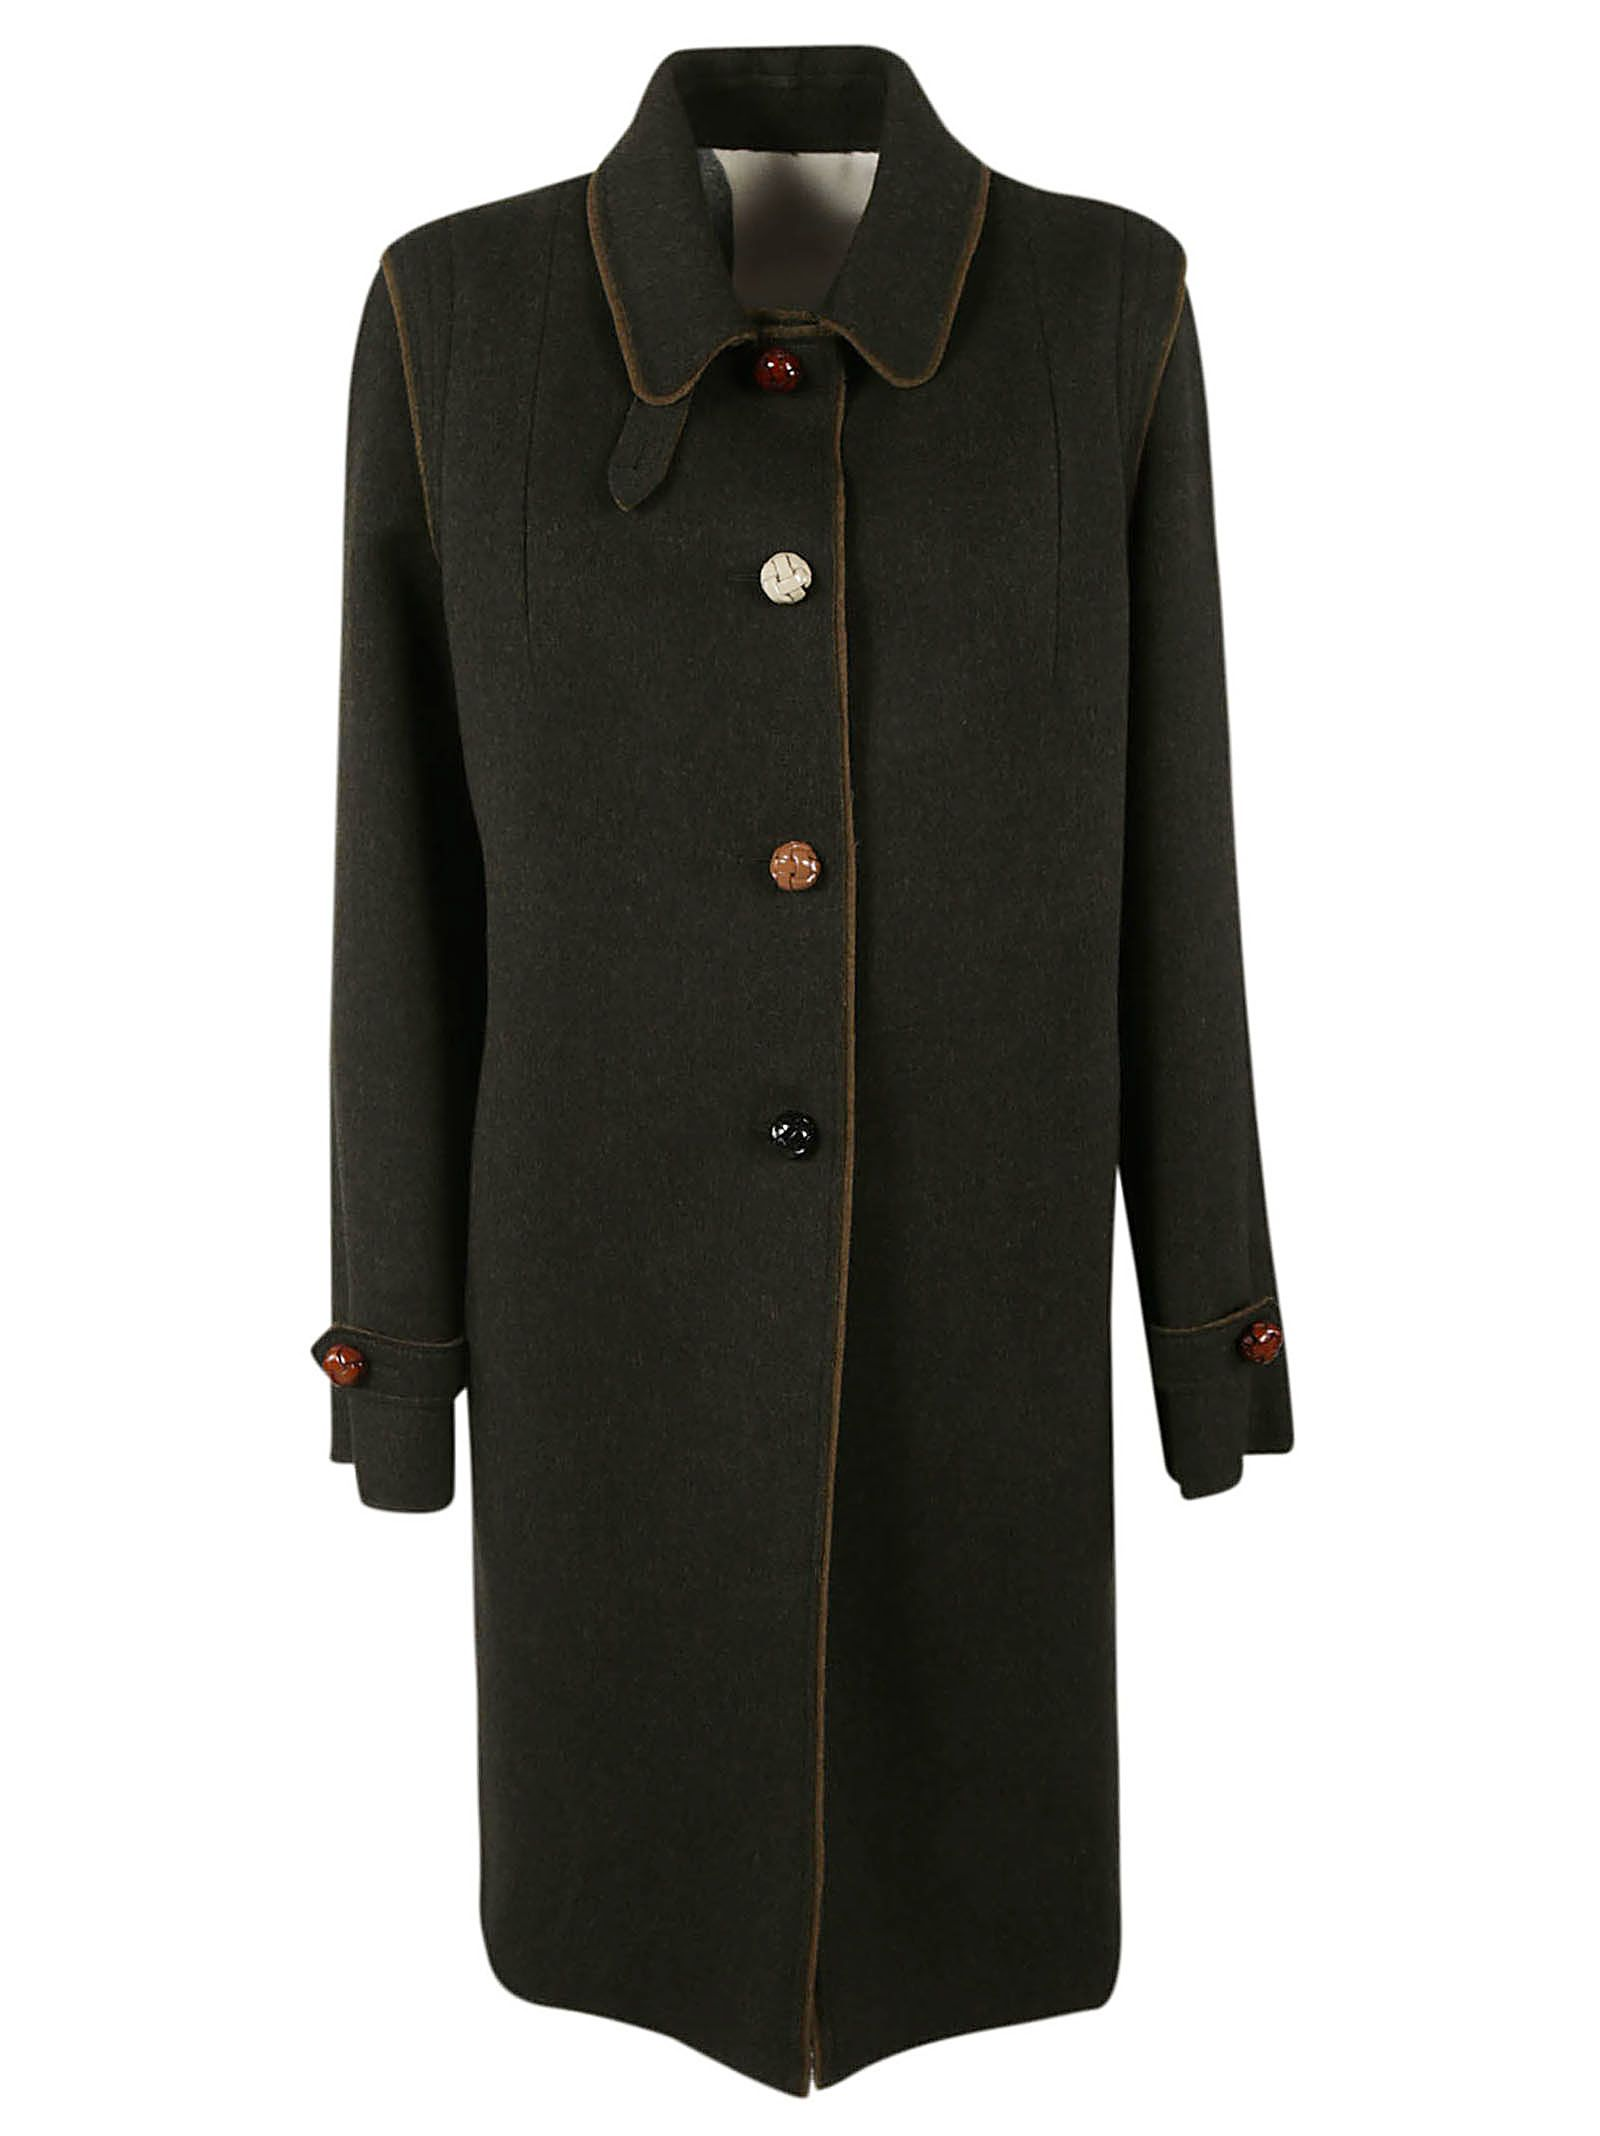 LODENTAL Lodental Single-Breasted Coat in Green